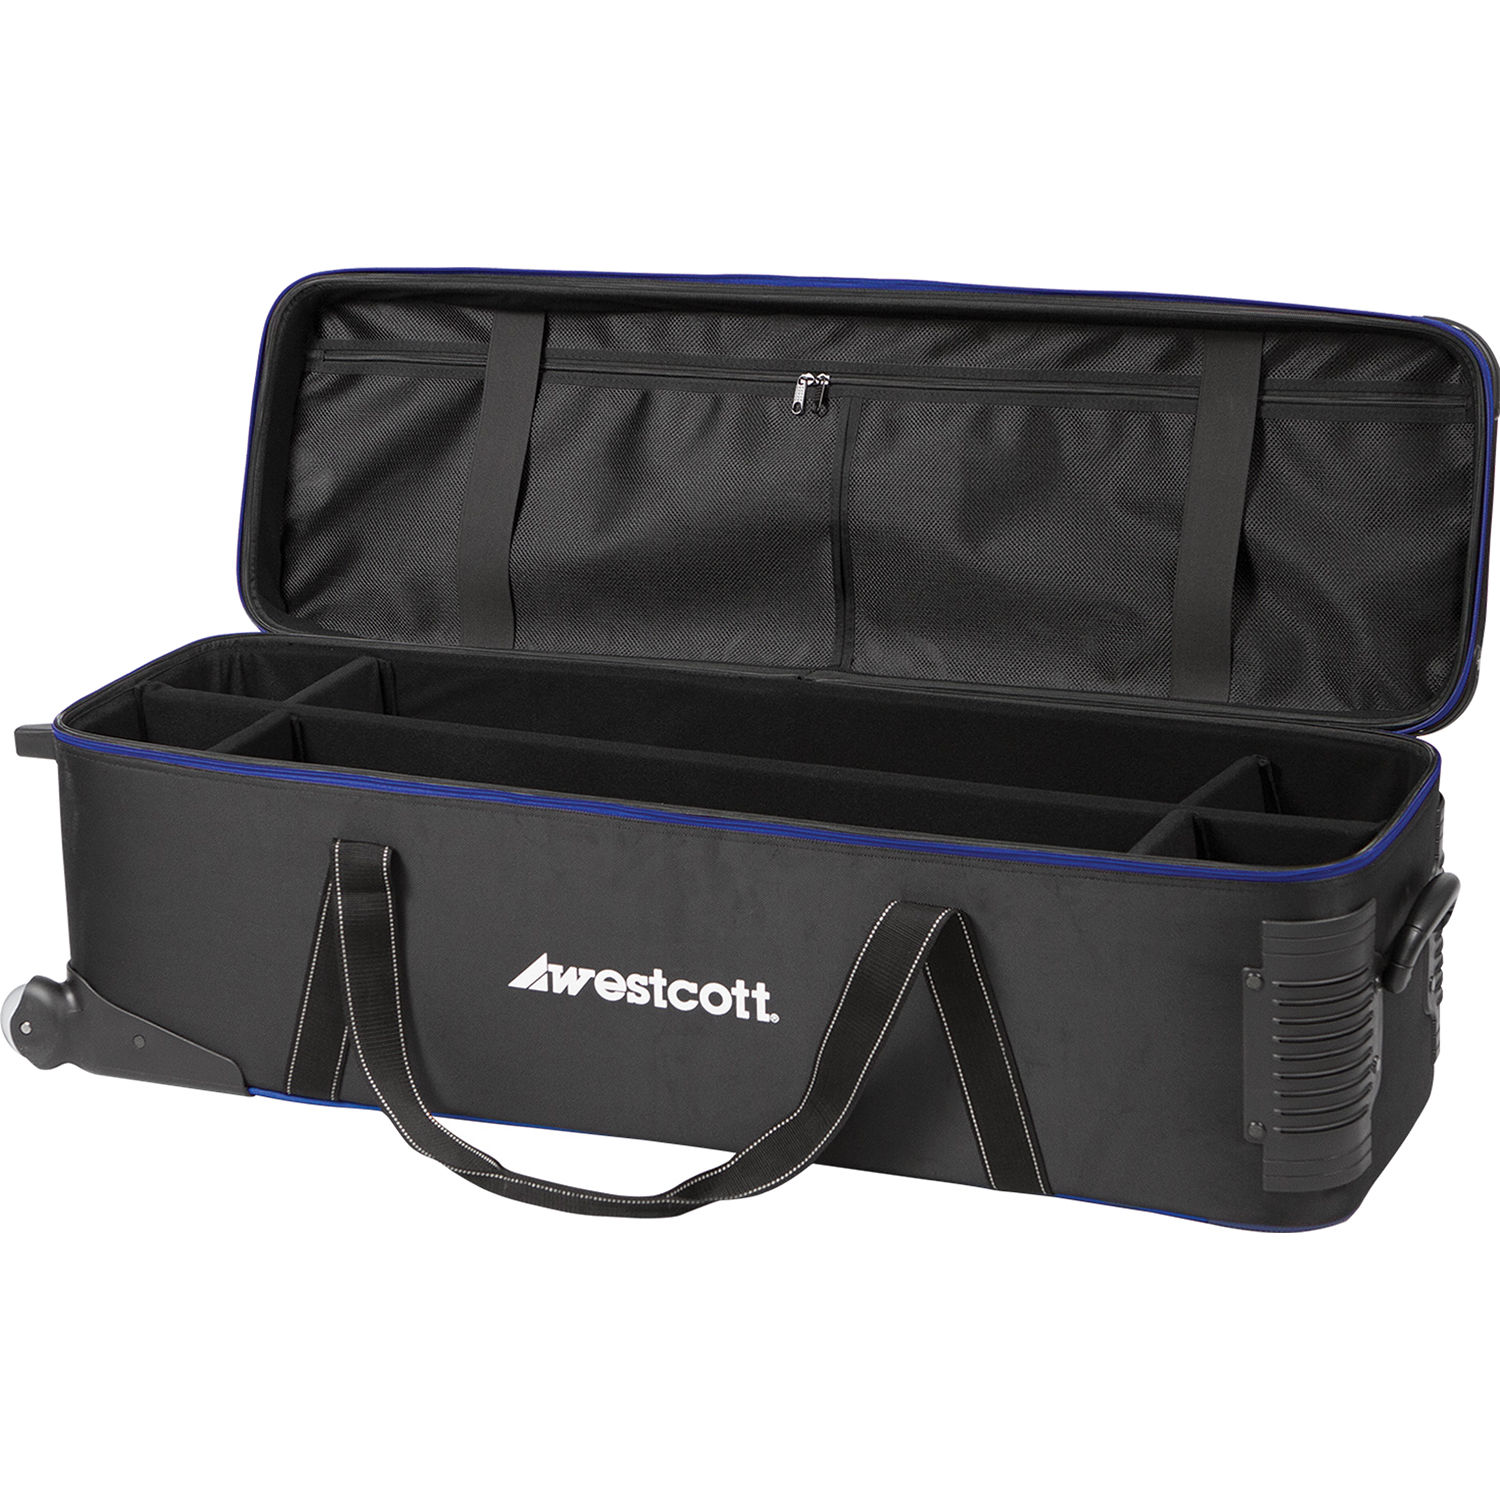 Westcott Deluxe Wheeled Travel Bag (Black) 4211N B&H Photo Video